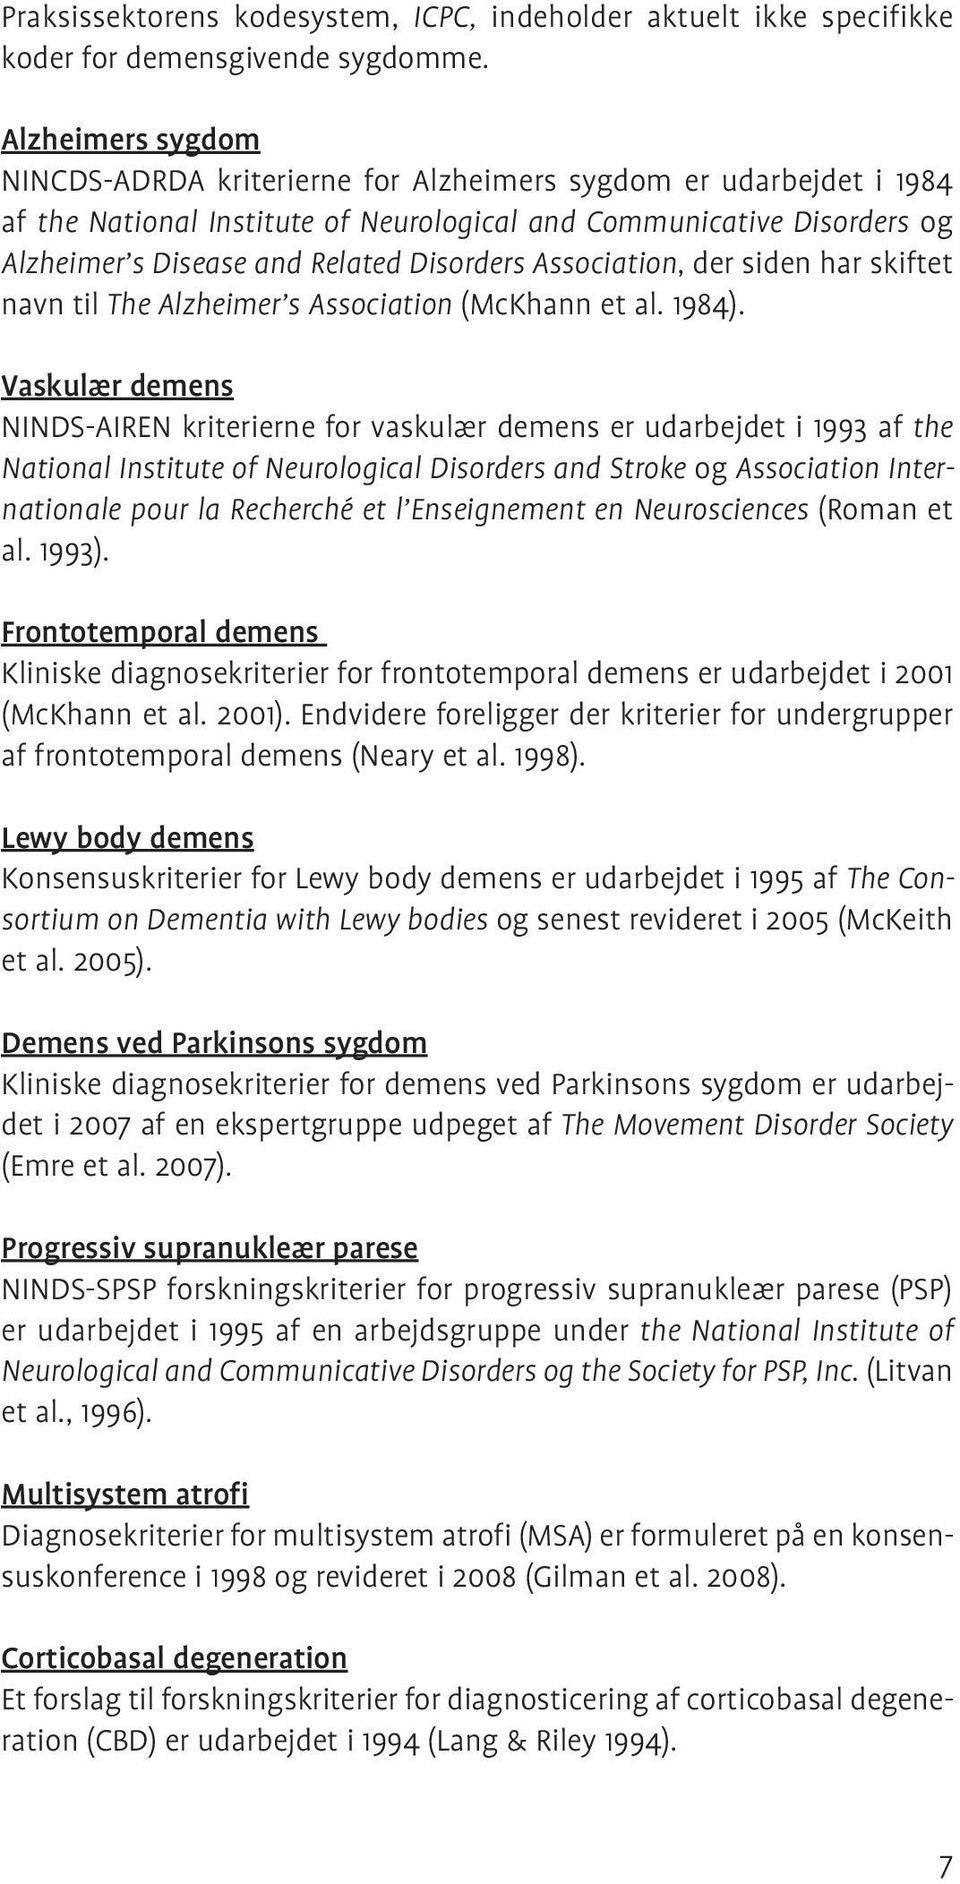 Disorders Association, der siden har skiftet navn til The Alzheimer s Association (McKhann et al. 1984).